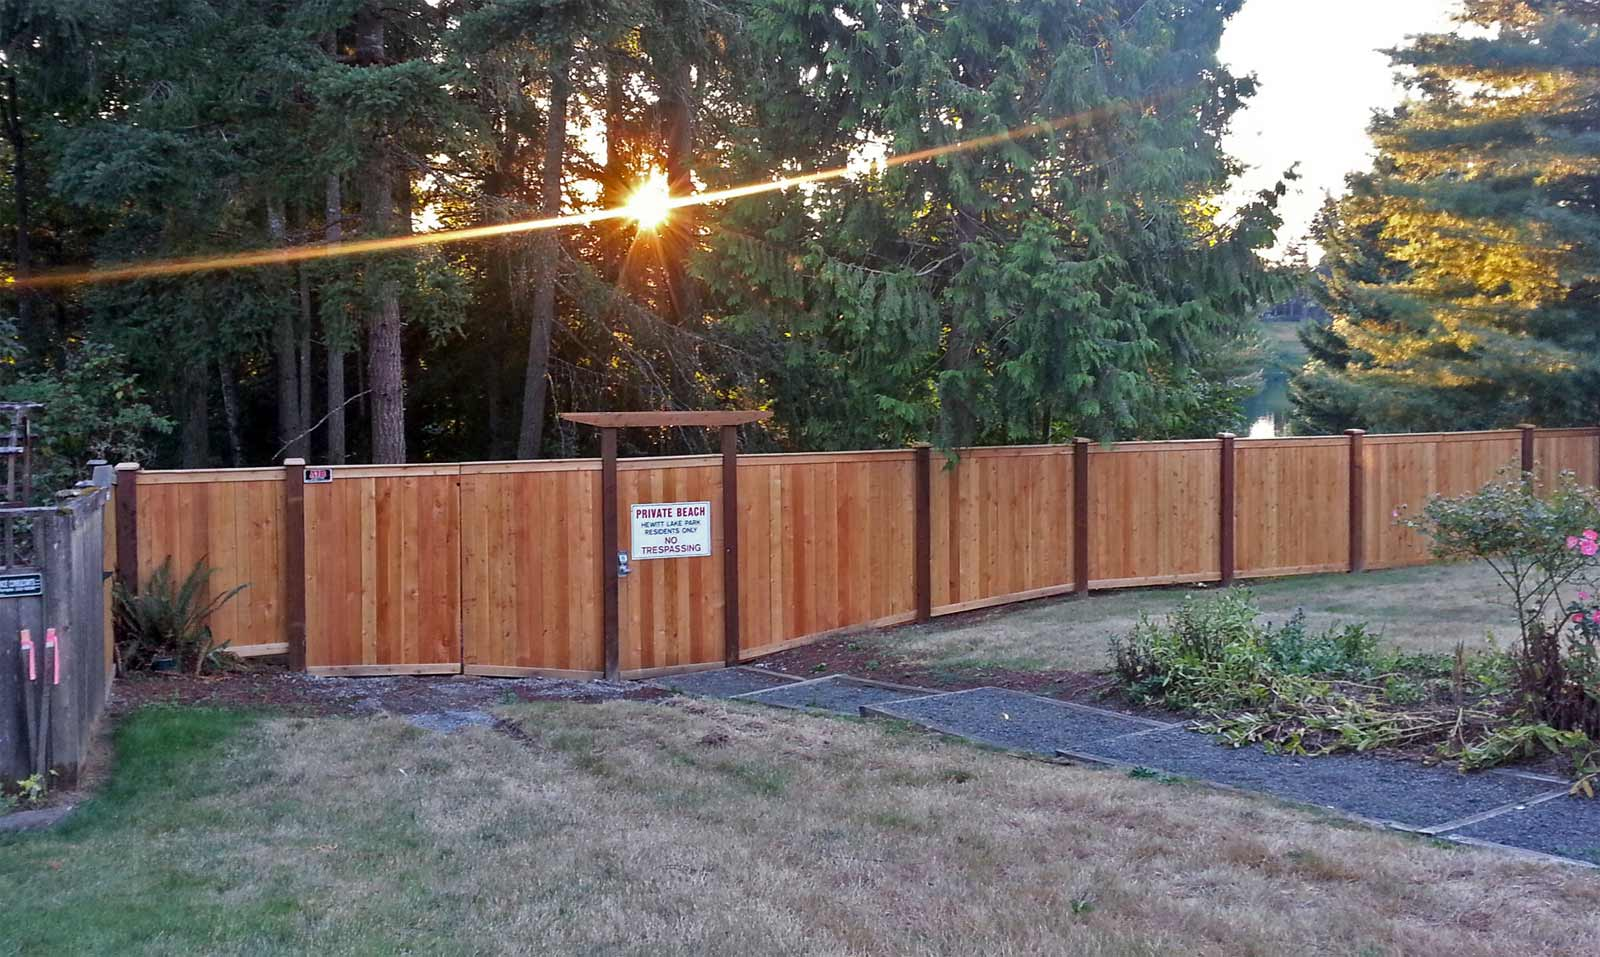 Hewett Lake security and privacy fence prevents the public from entering this private lakefront community.